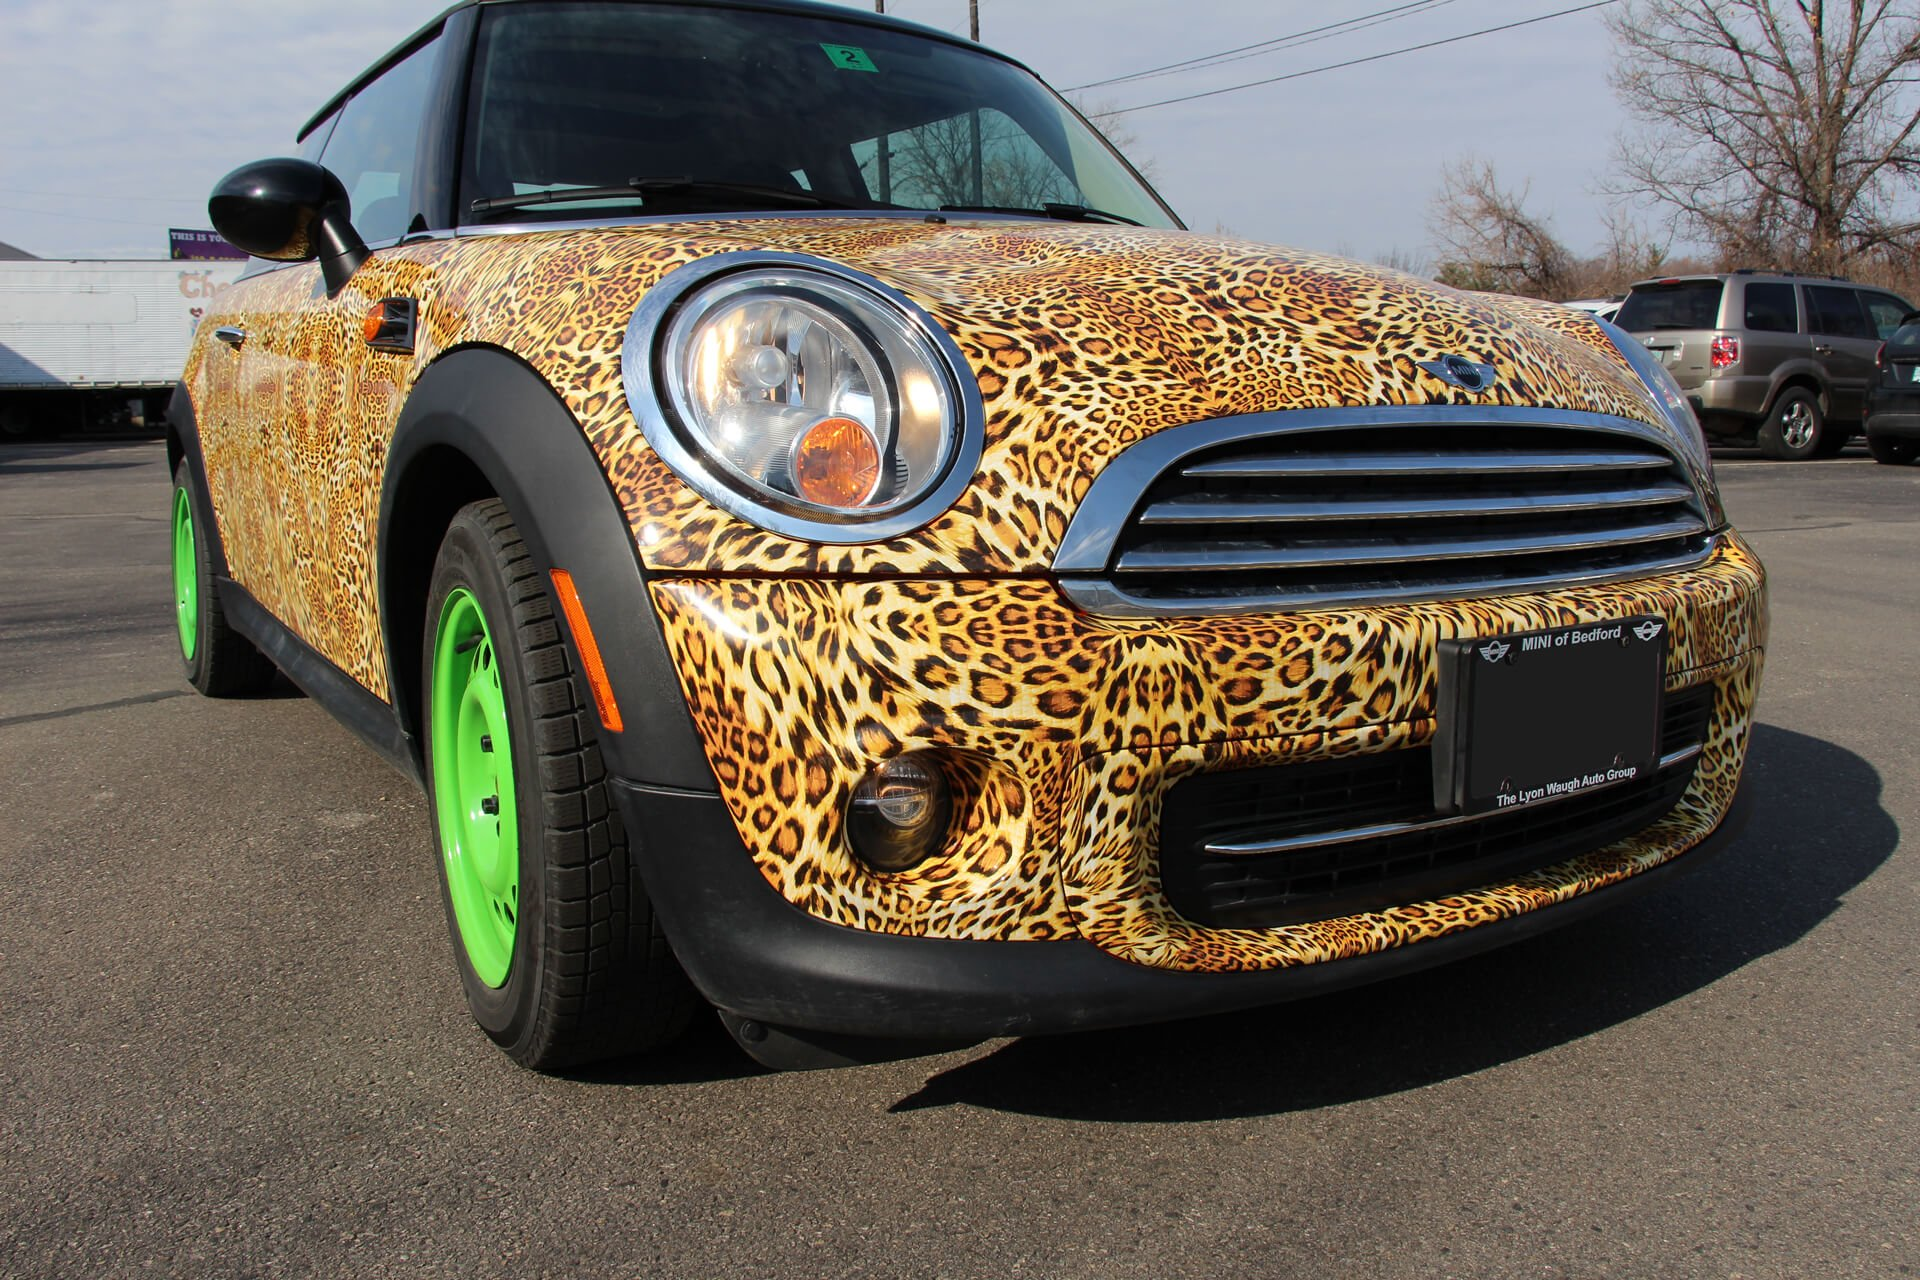 left front mini cooper leopard after